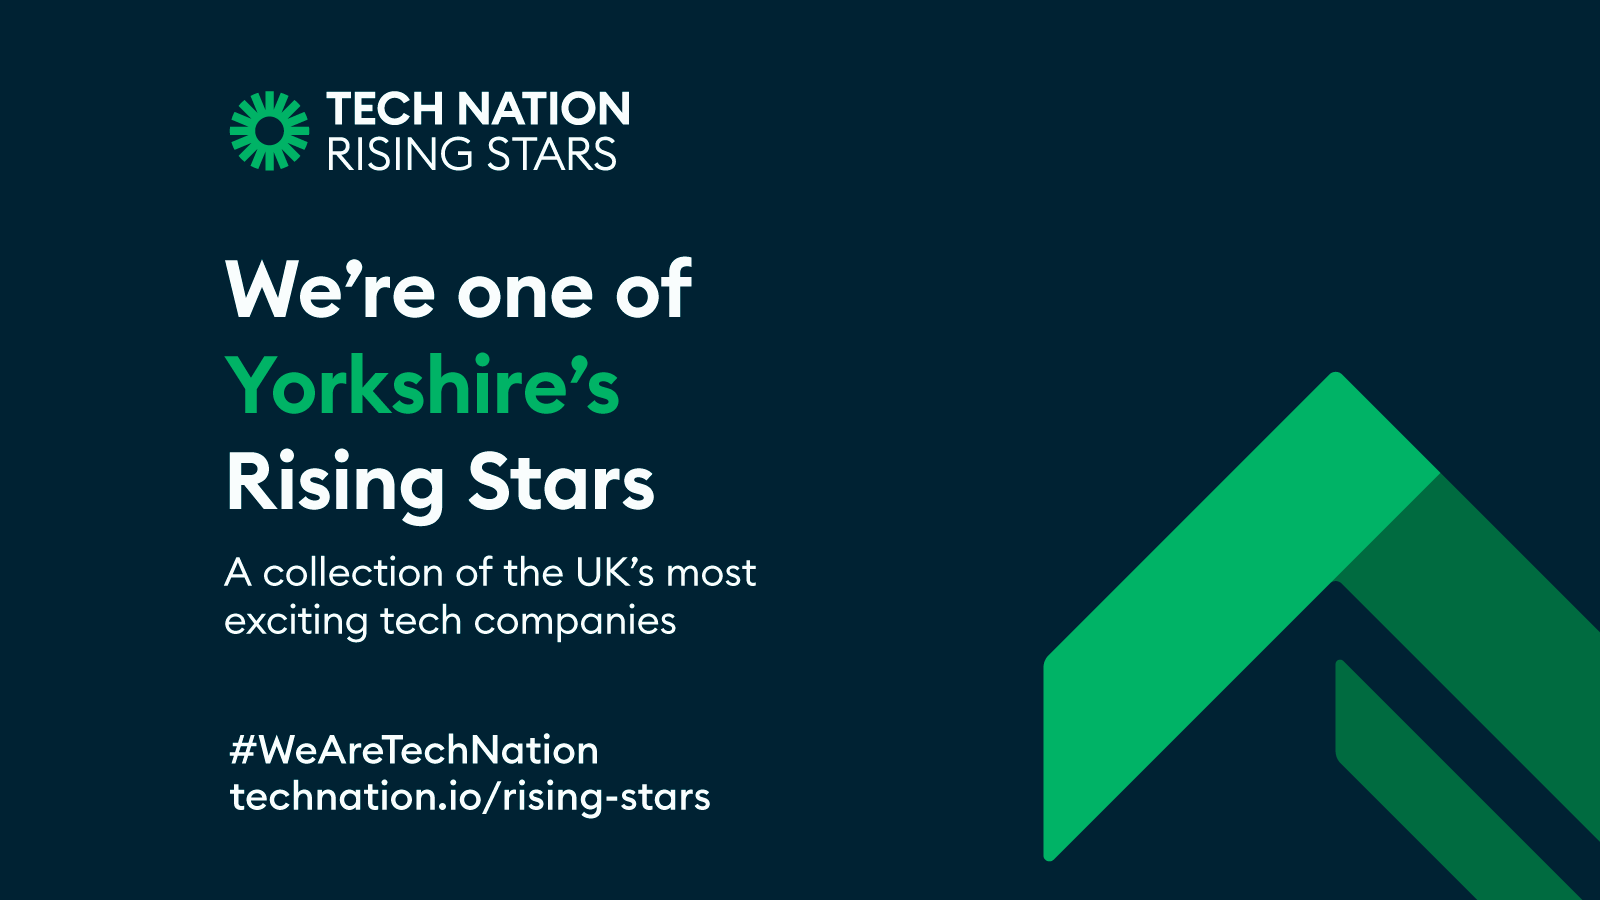 COGNITO LEARNING RECOGNISED AS A RISING STAR